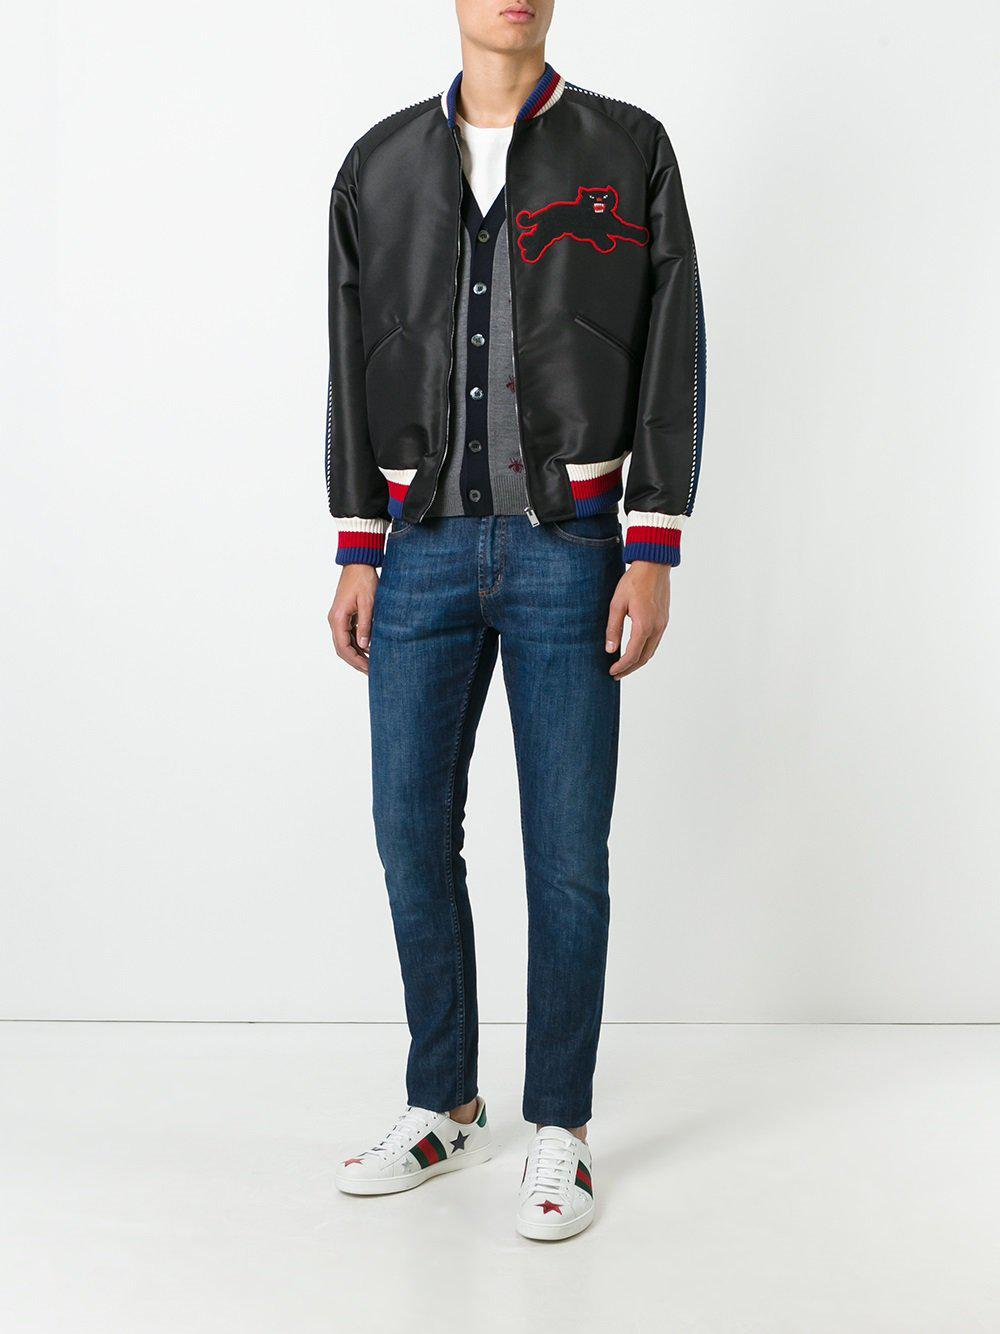 ed113d874256 Lyst - Gucci Panther Embroidery Satin Jacket in Black for Men